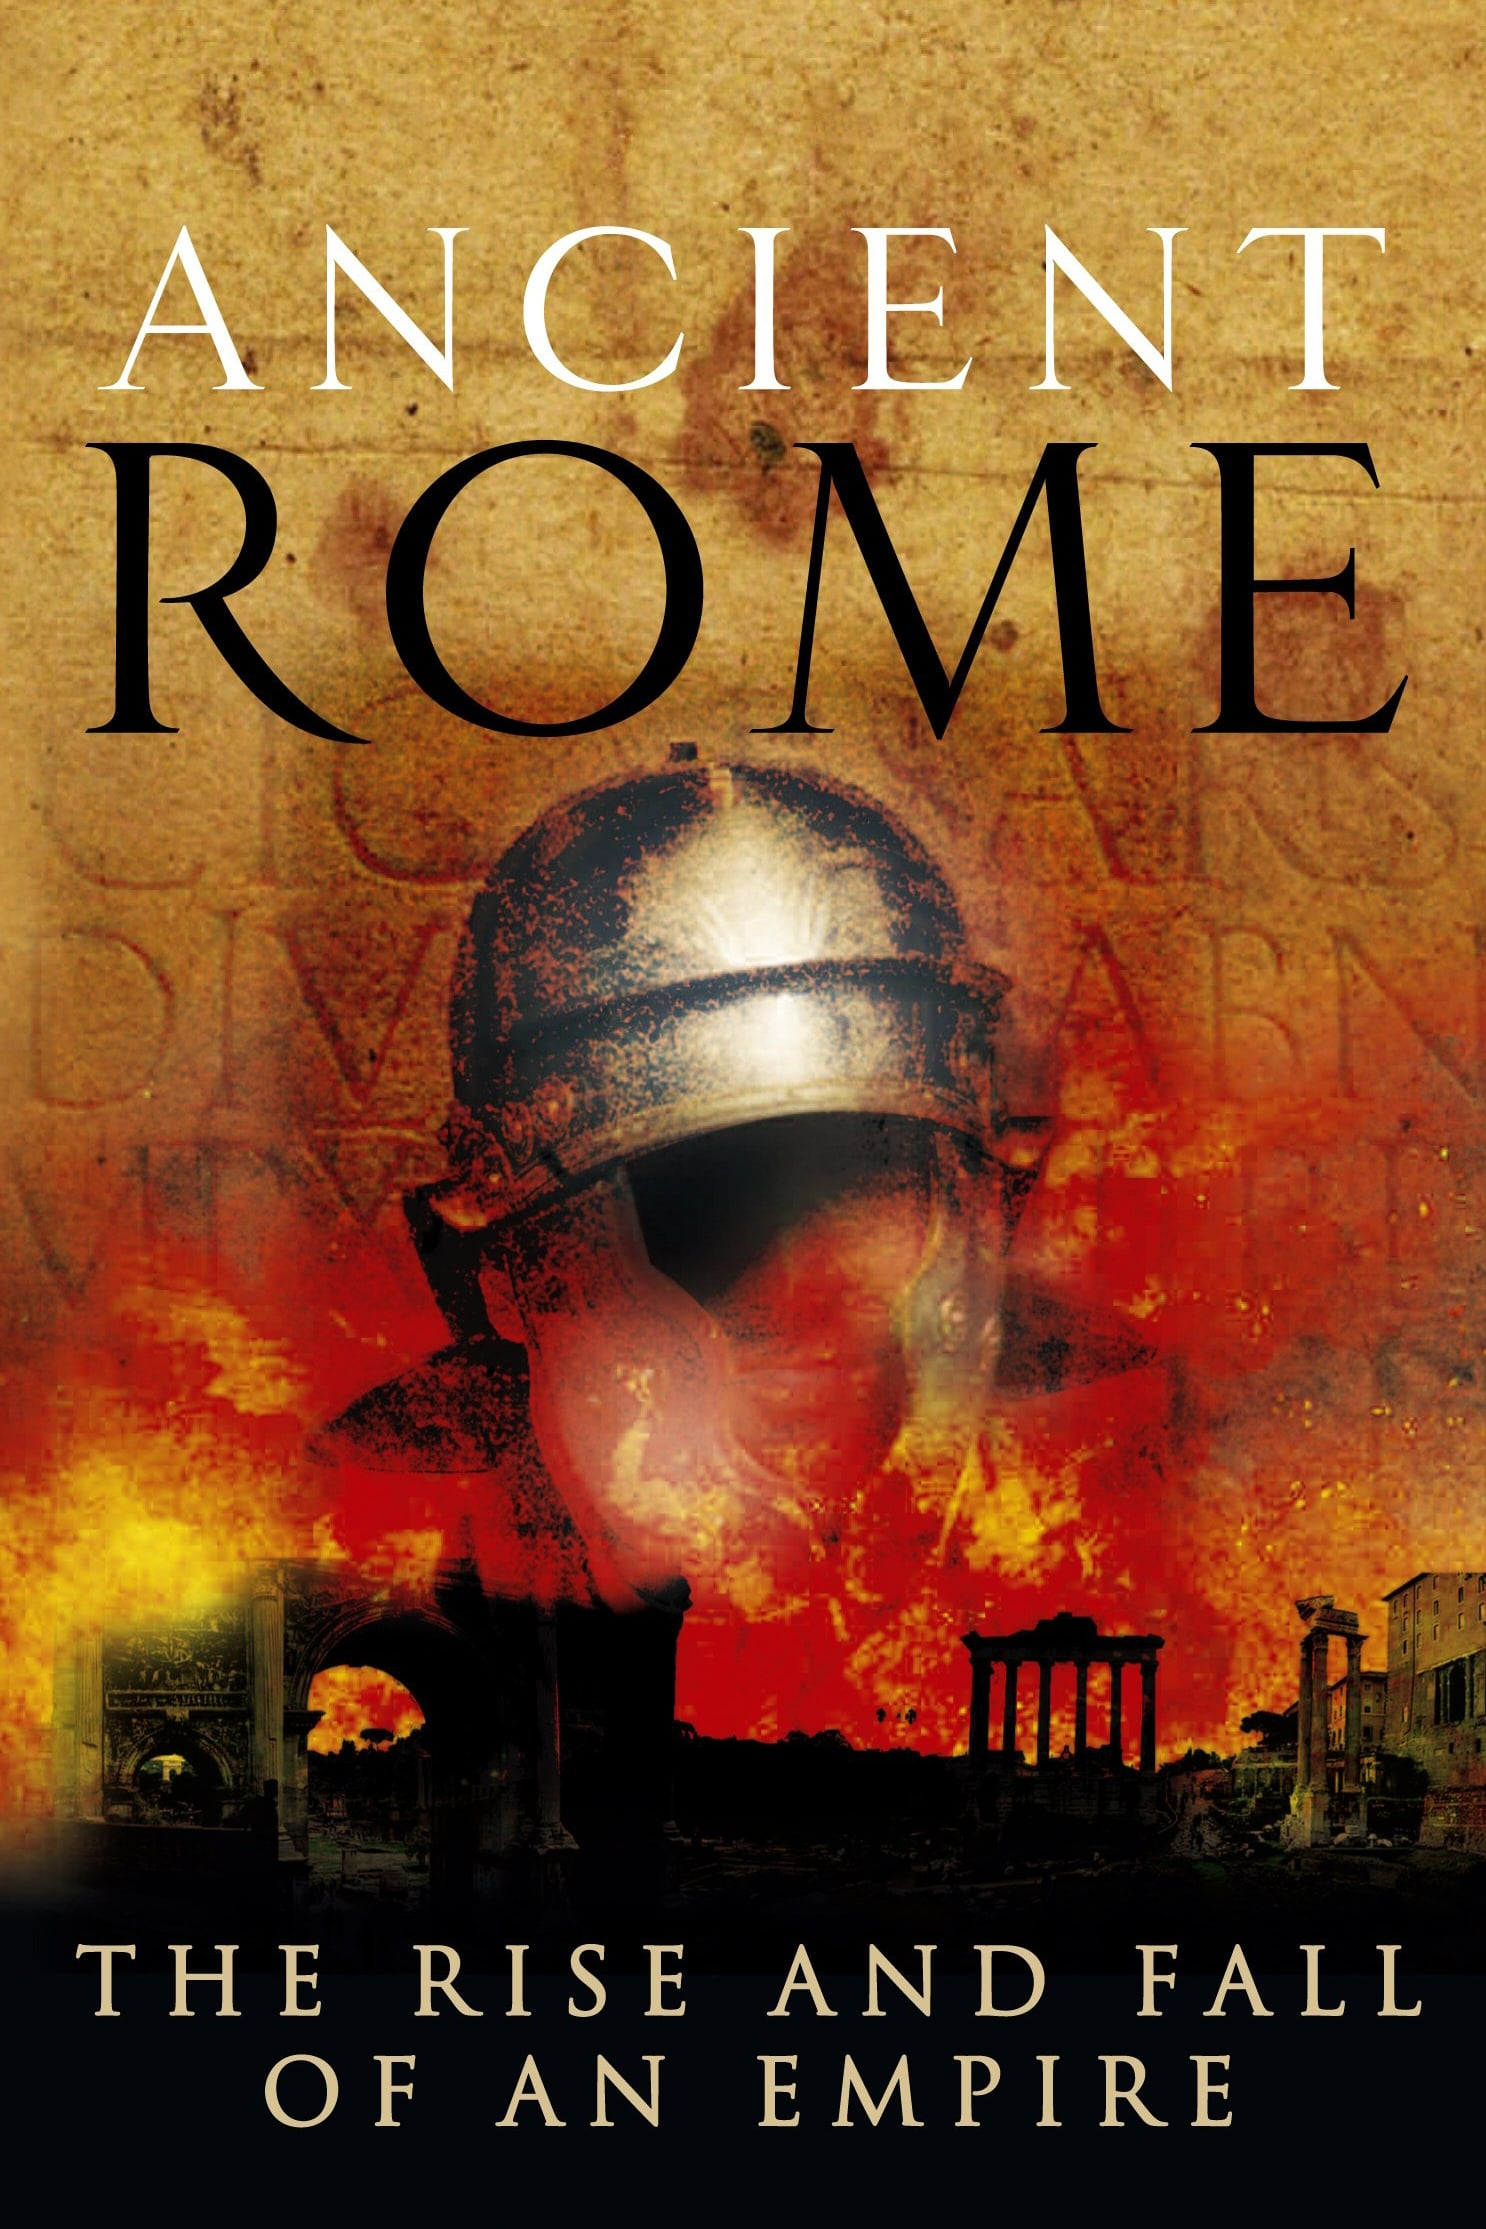 Ancient Rome: The Rise and Fall of an Empire (2006)